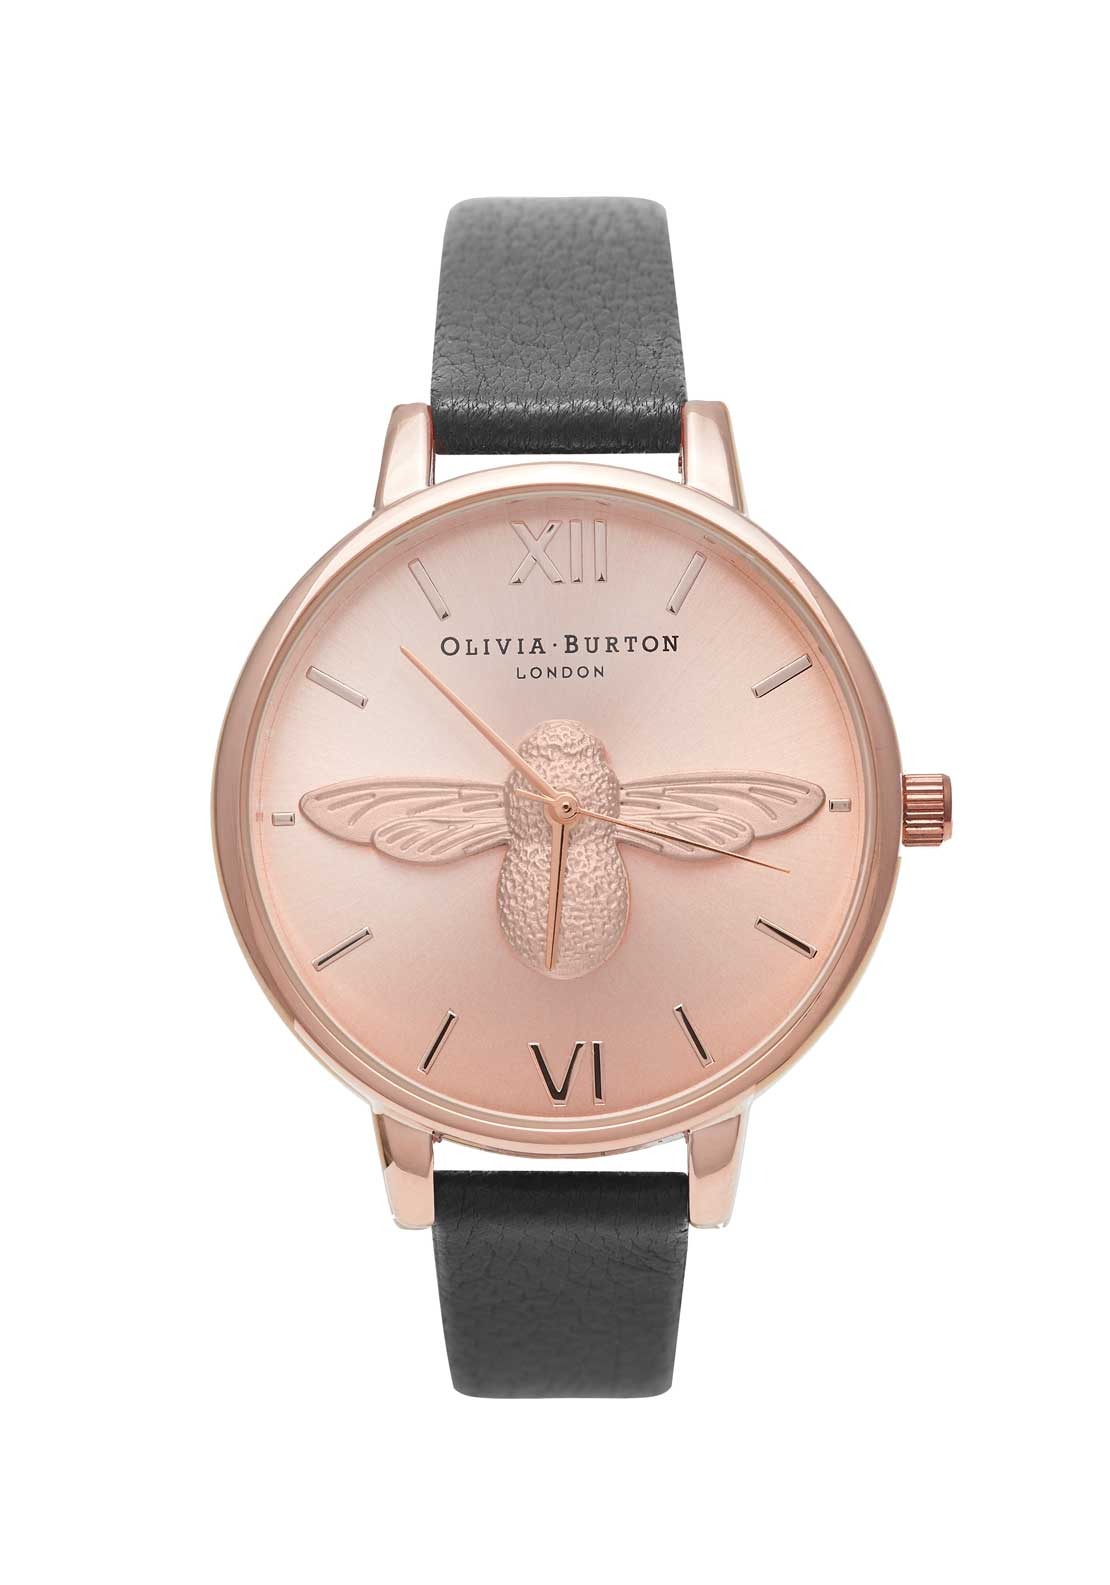 Olivia Burton Moulded Bee Watch in Black, Rose Gold